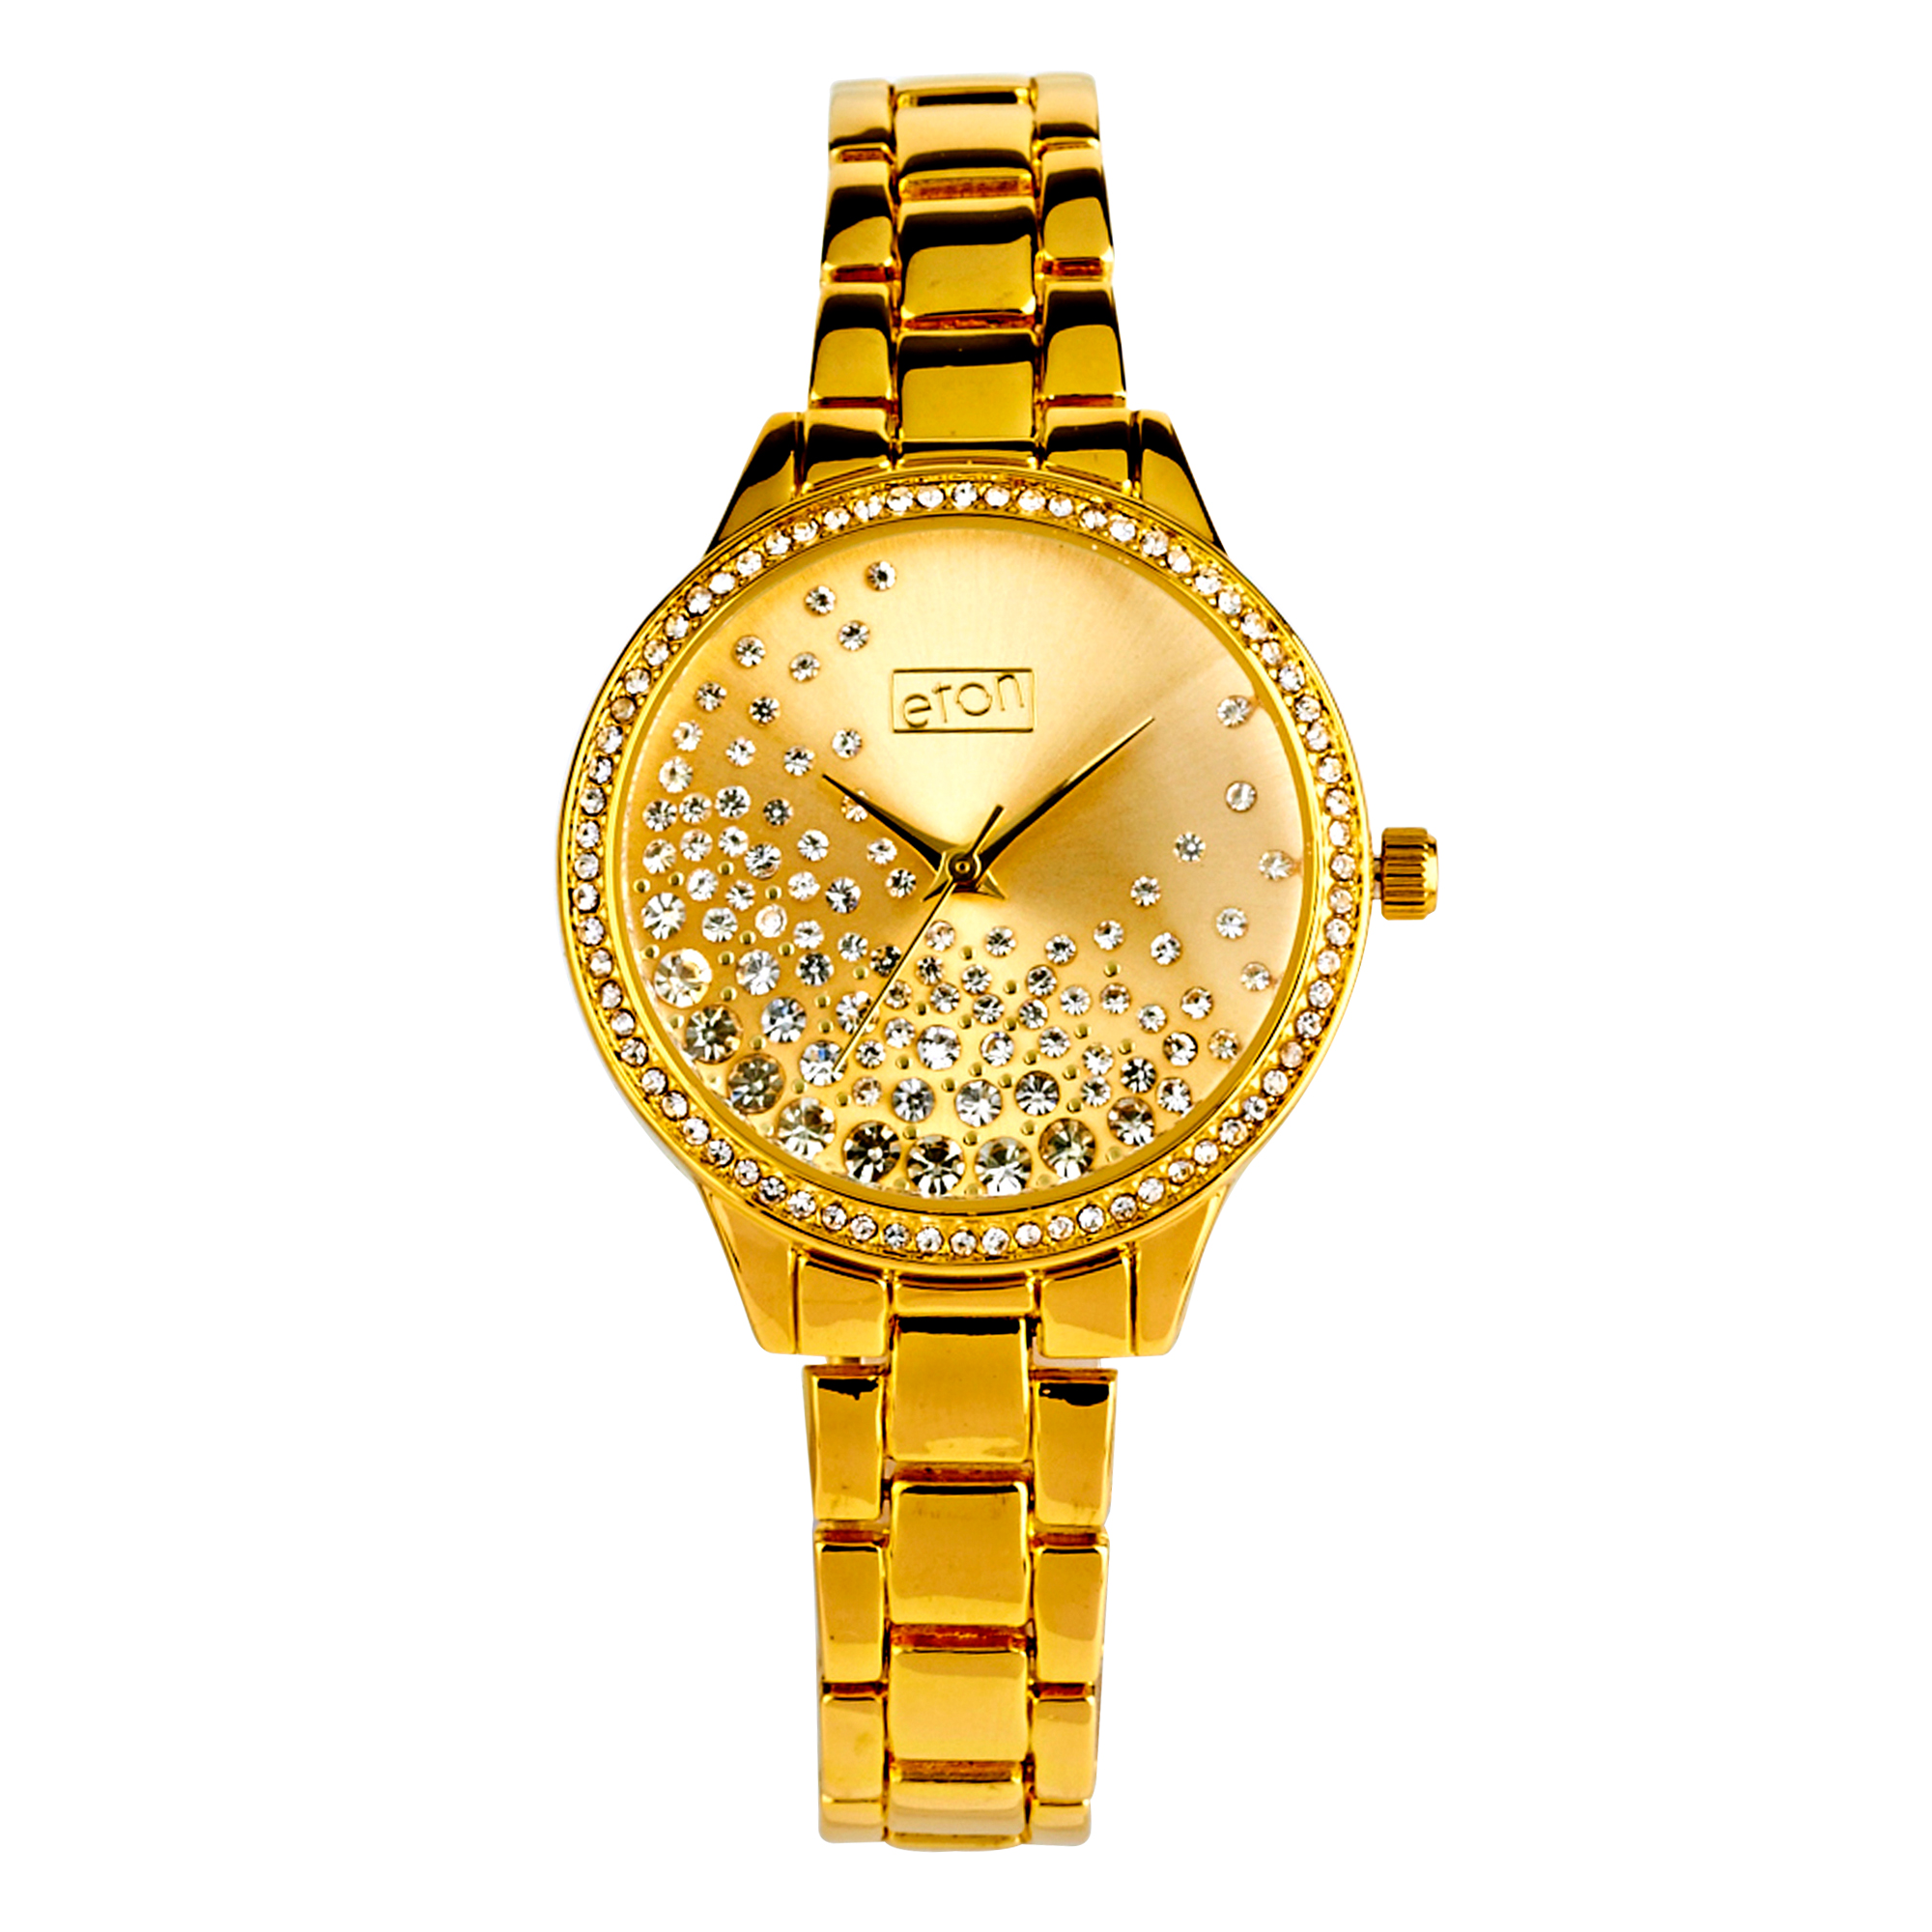 de omega pinterest women ville butterfly watches pin prestige s